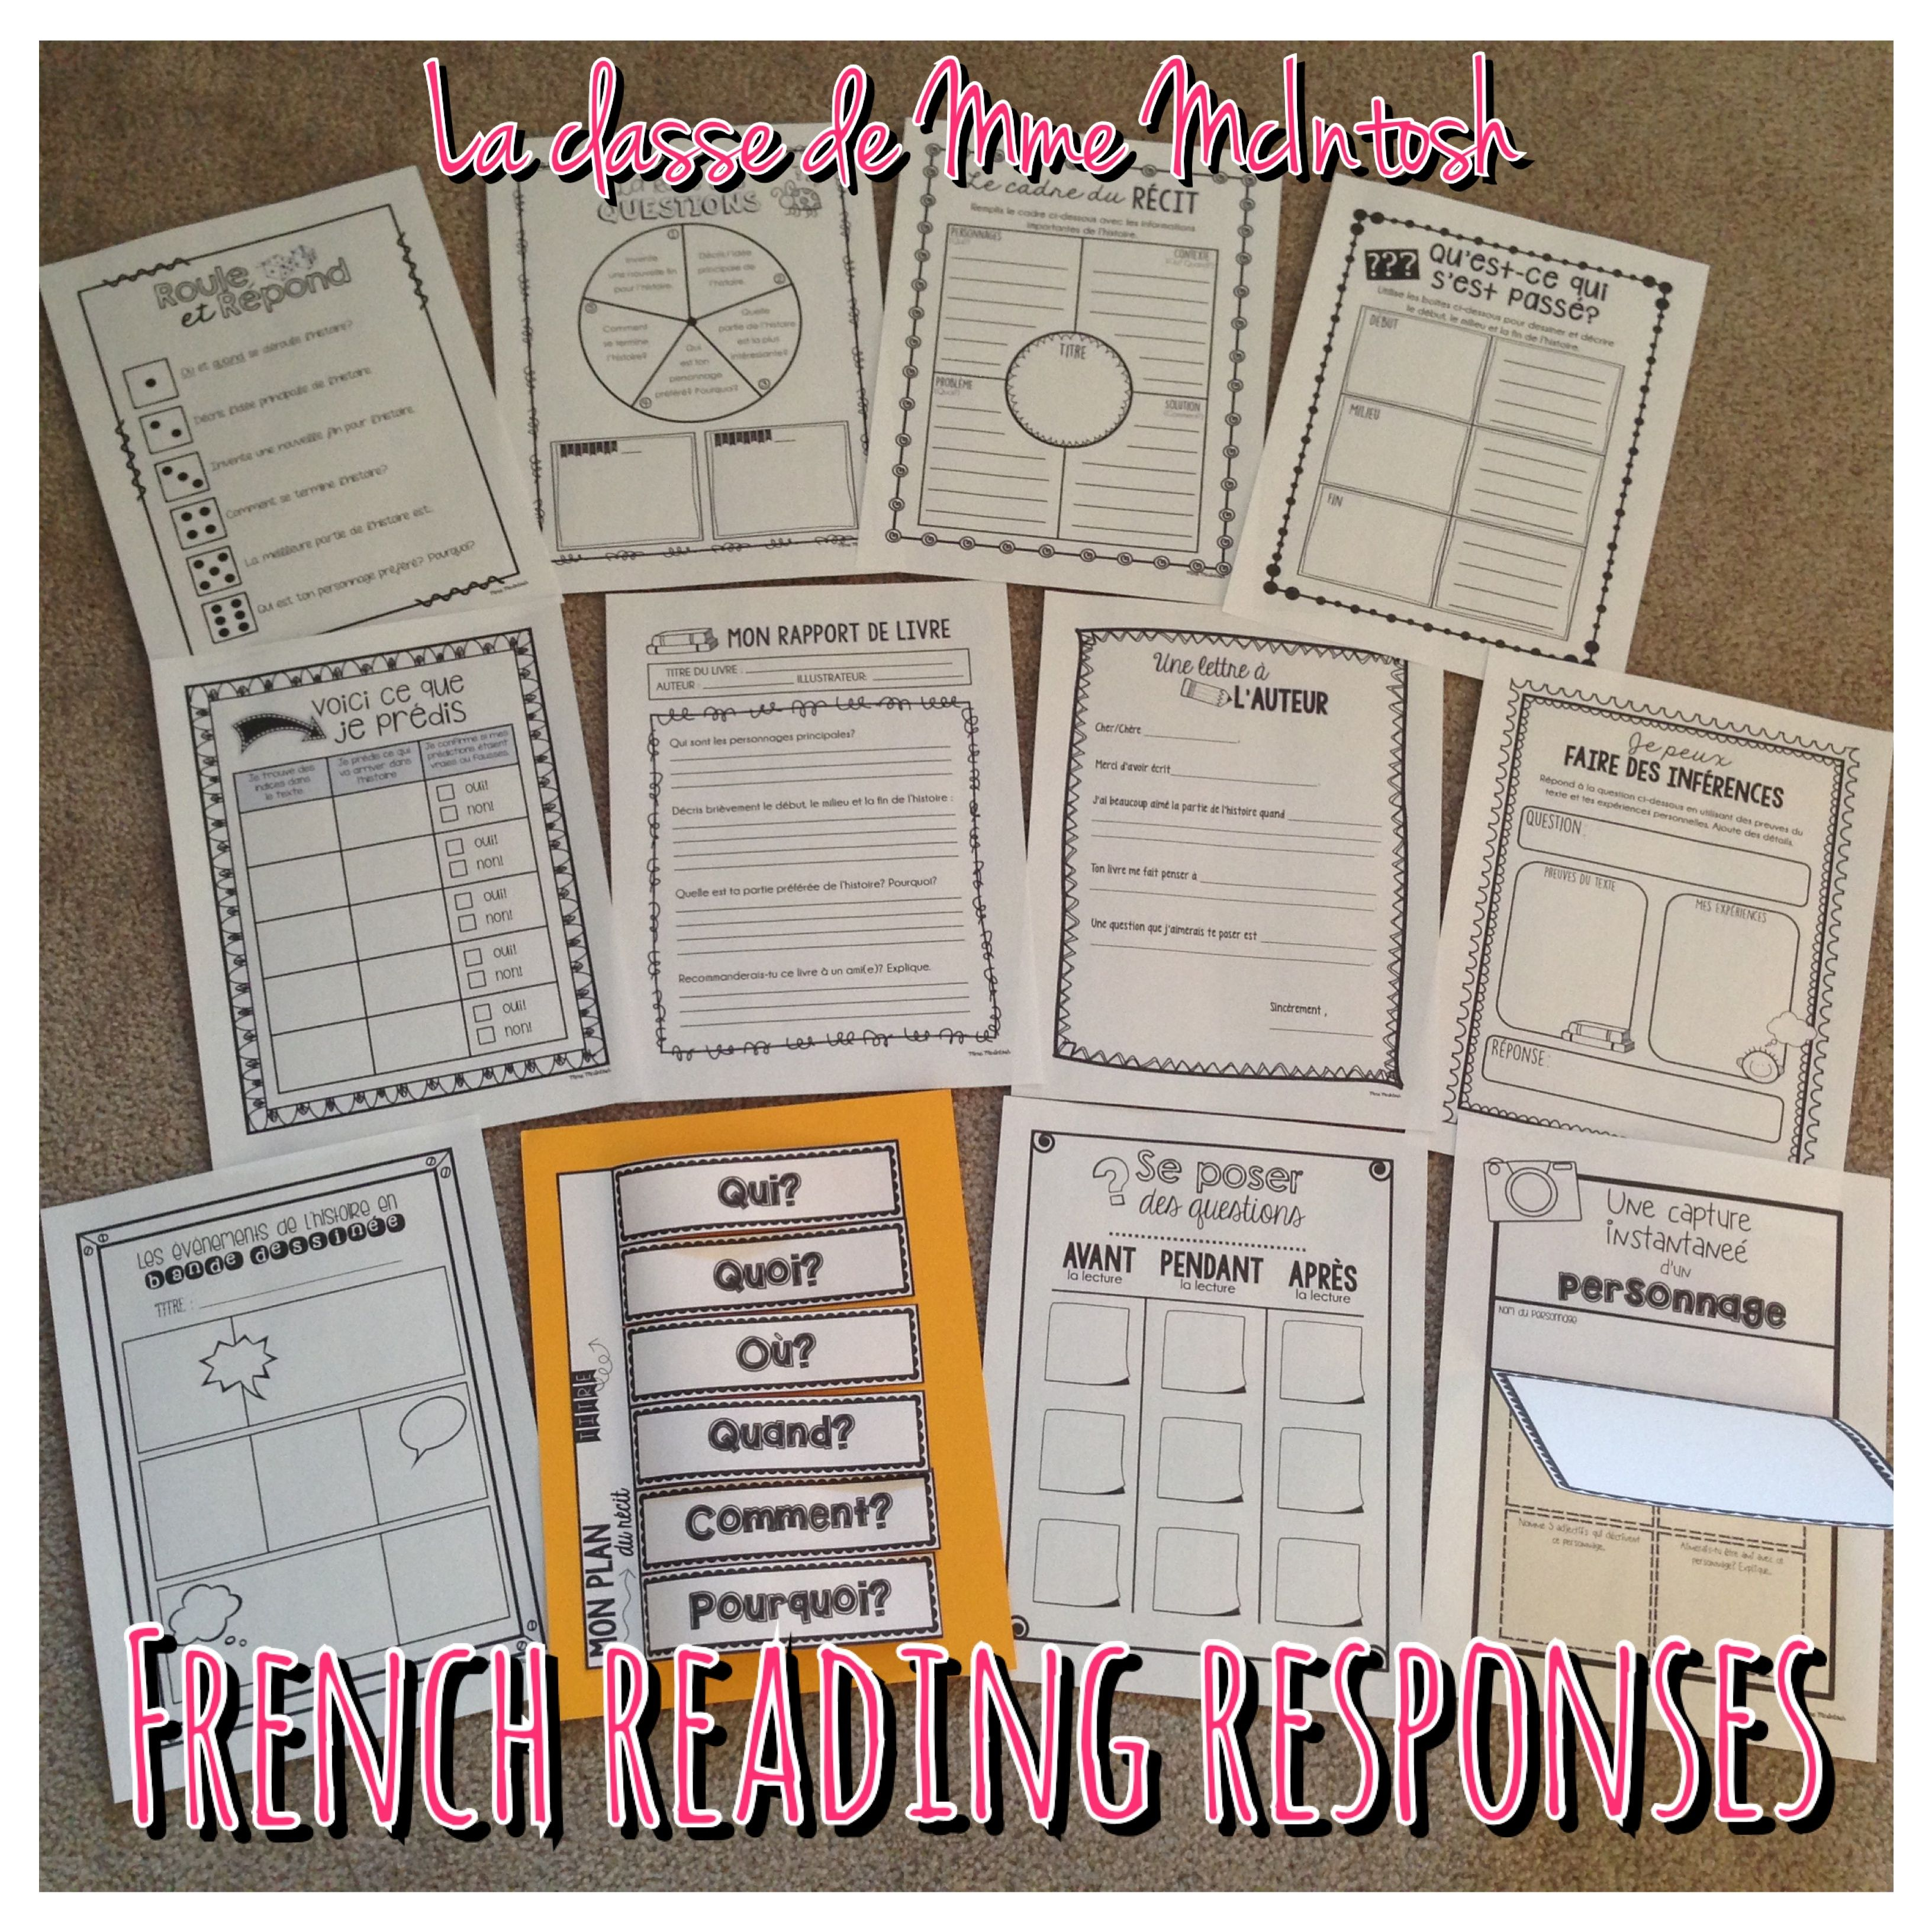 medium resolution of 12 activités de compréhension/12 French Reading Response activities    Teaching french